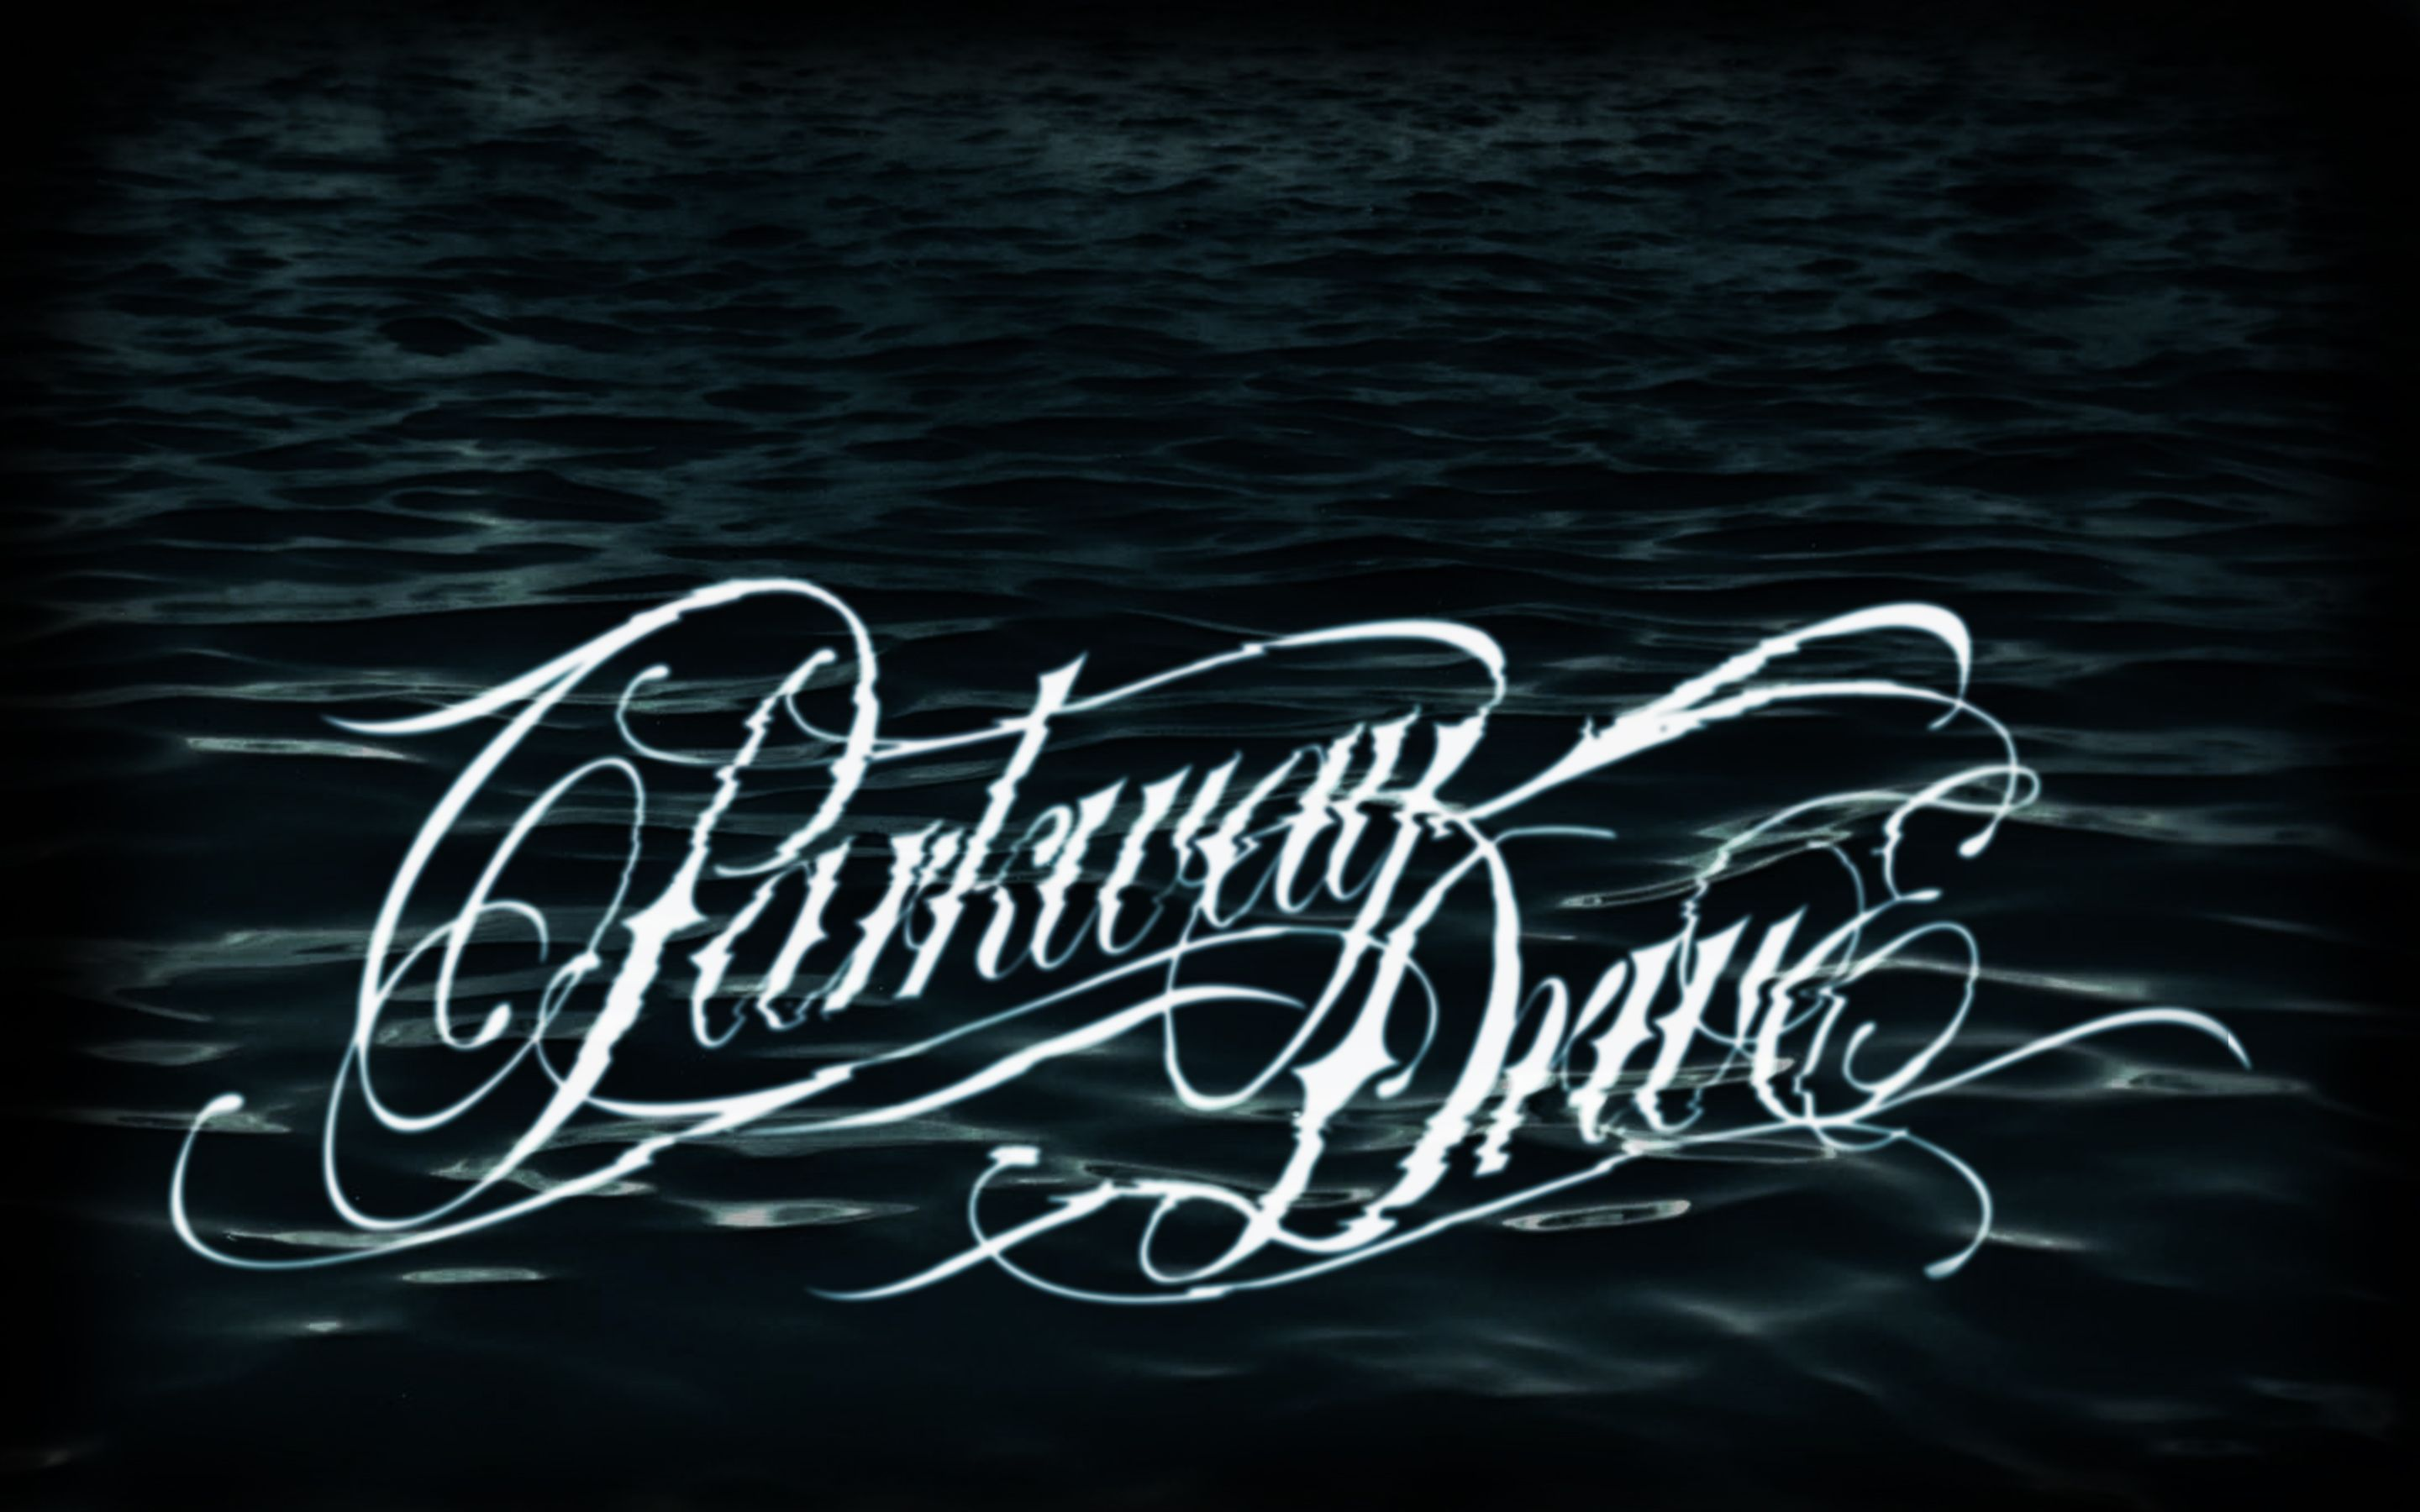 Parkway Drive Wallpaper Parkway drive, Neon signs, Driving